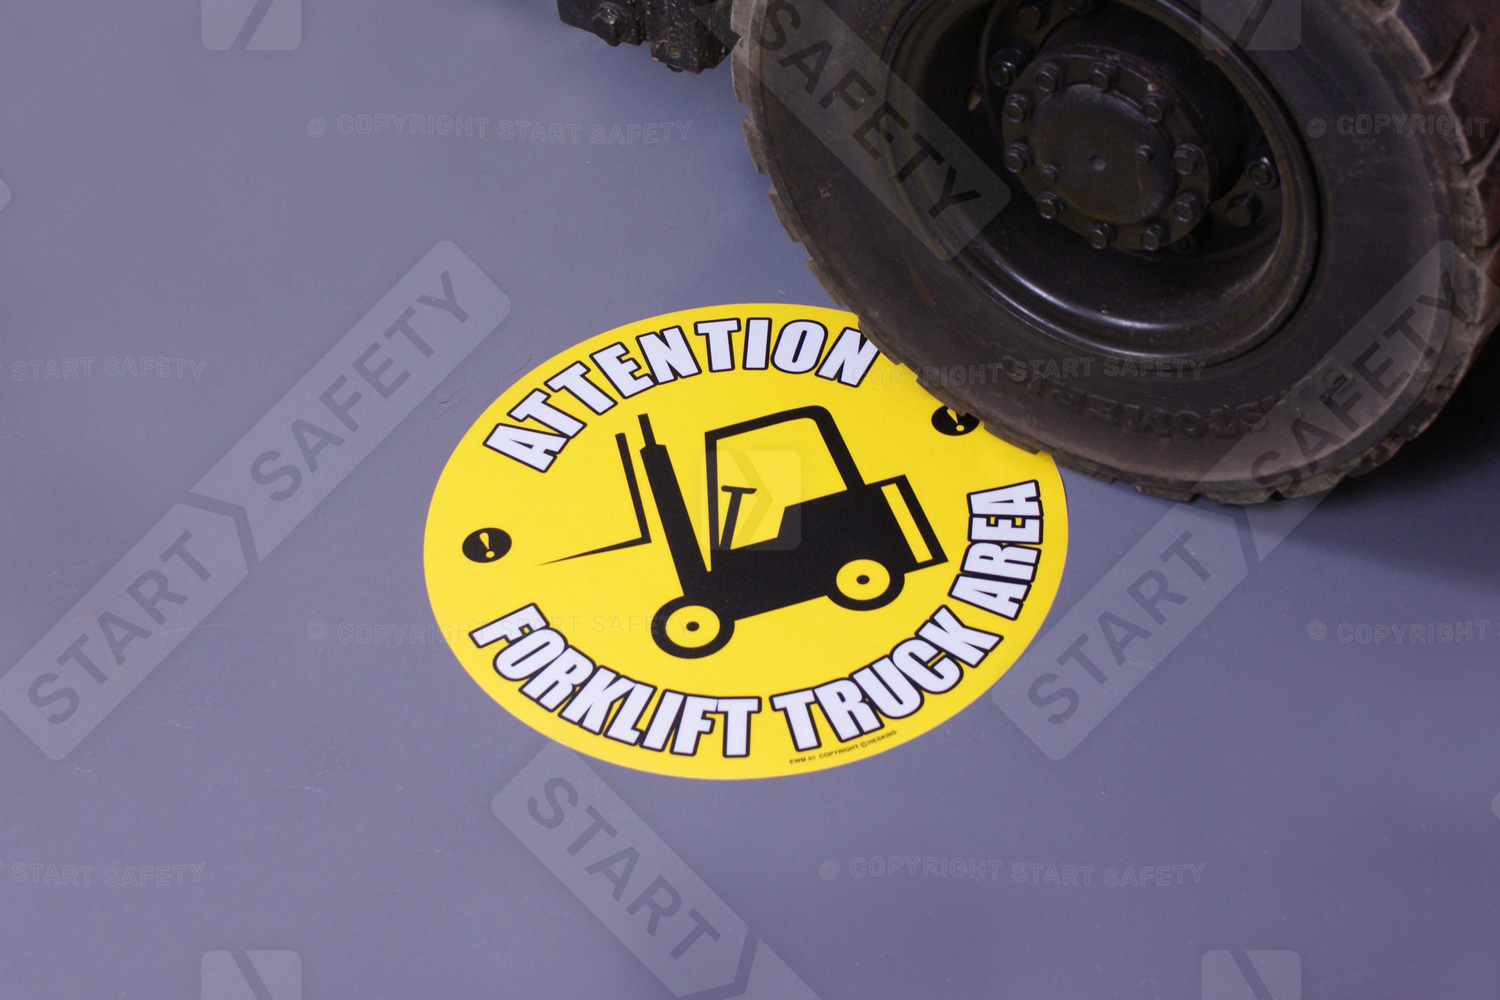 Floor sticker being ran over with a forklift